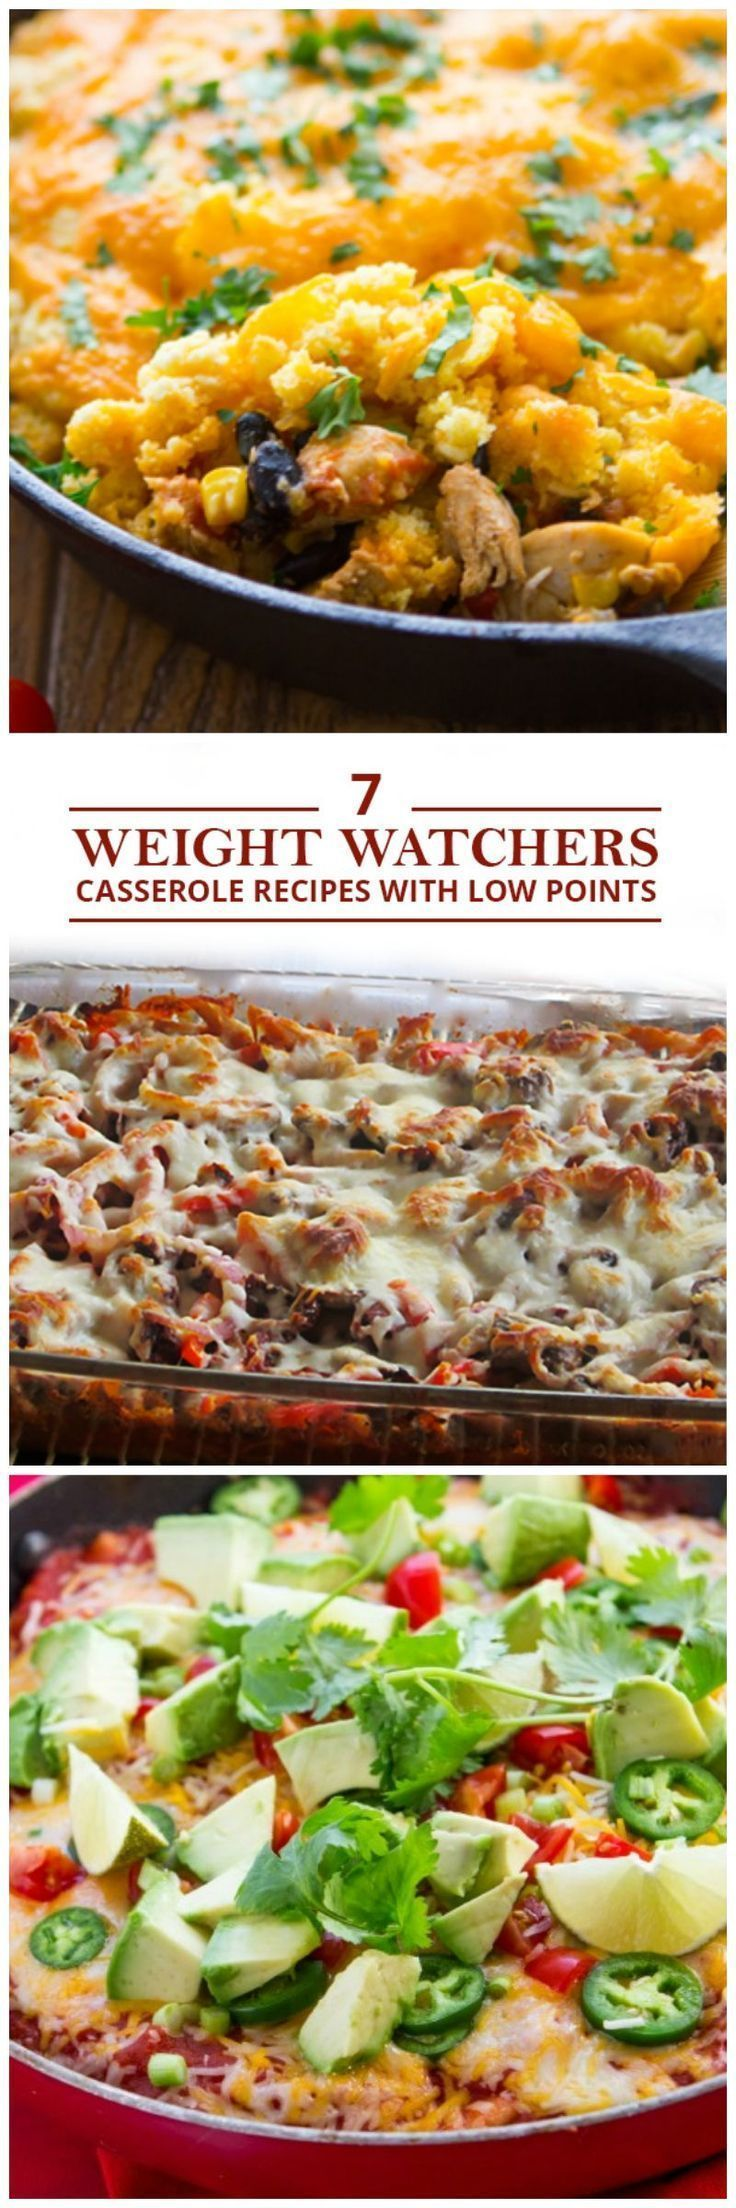 Feb 14, · Weight Watchers Recipe of the Day: Campbell's Hearty Chicken Noodle Casserole Made Lighter If you have a family and are on Weight Watchers it's important to find easy, healthy recipes that work for the entire family.5/5(3).